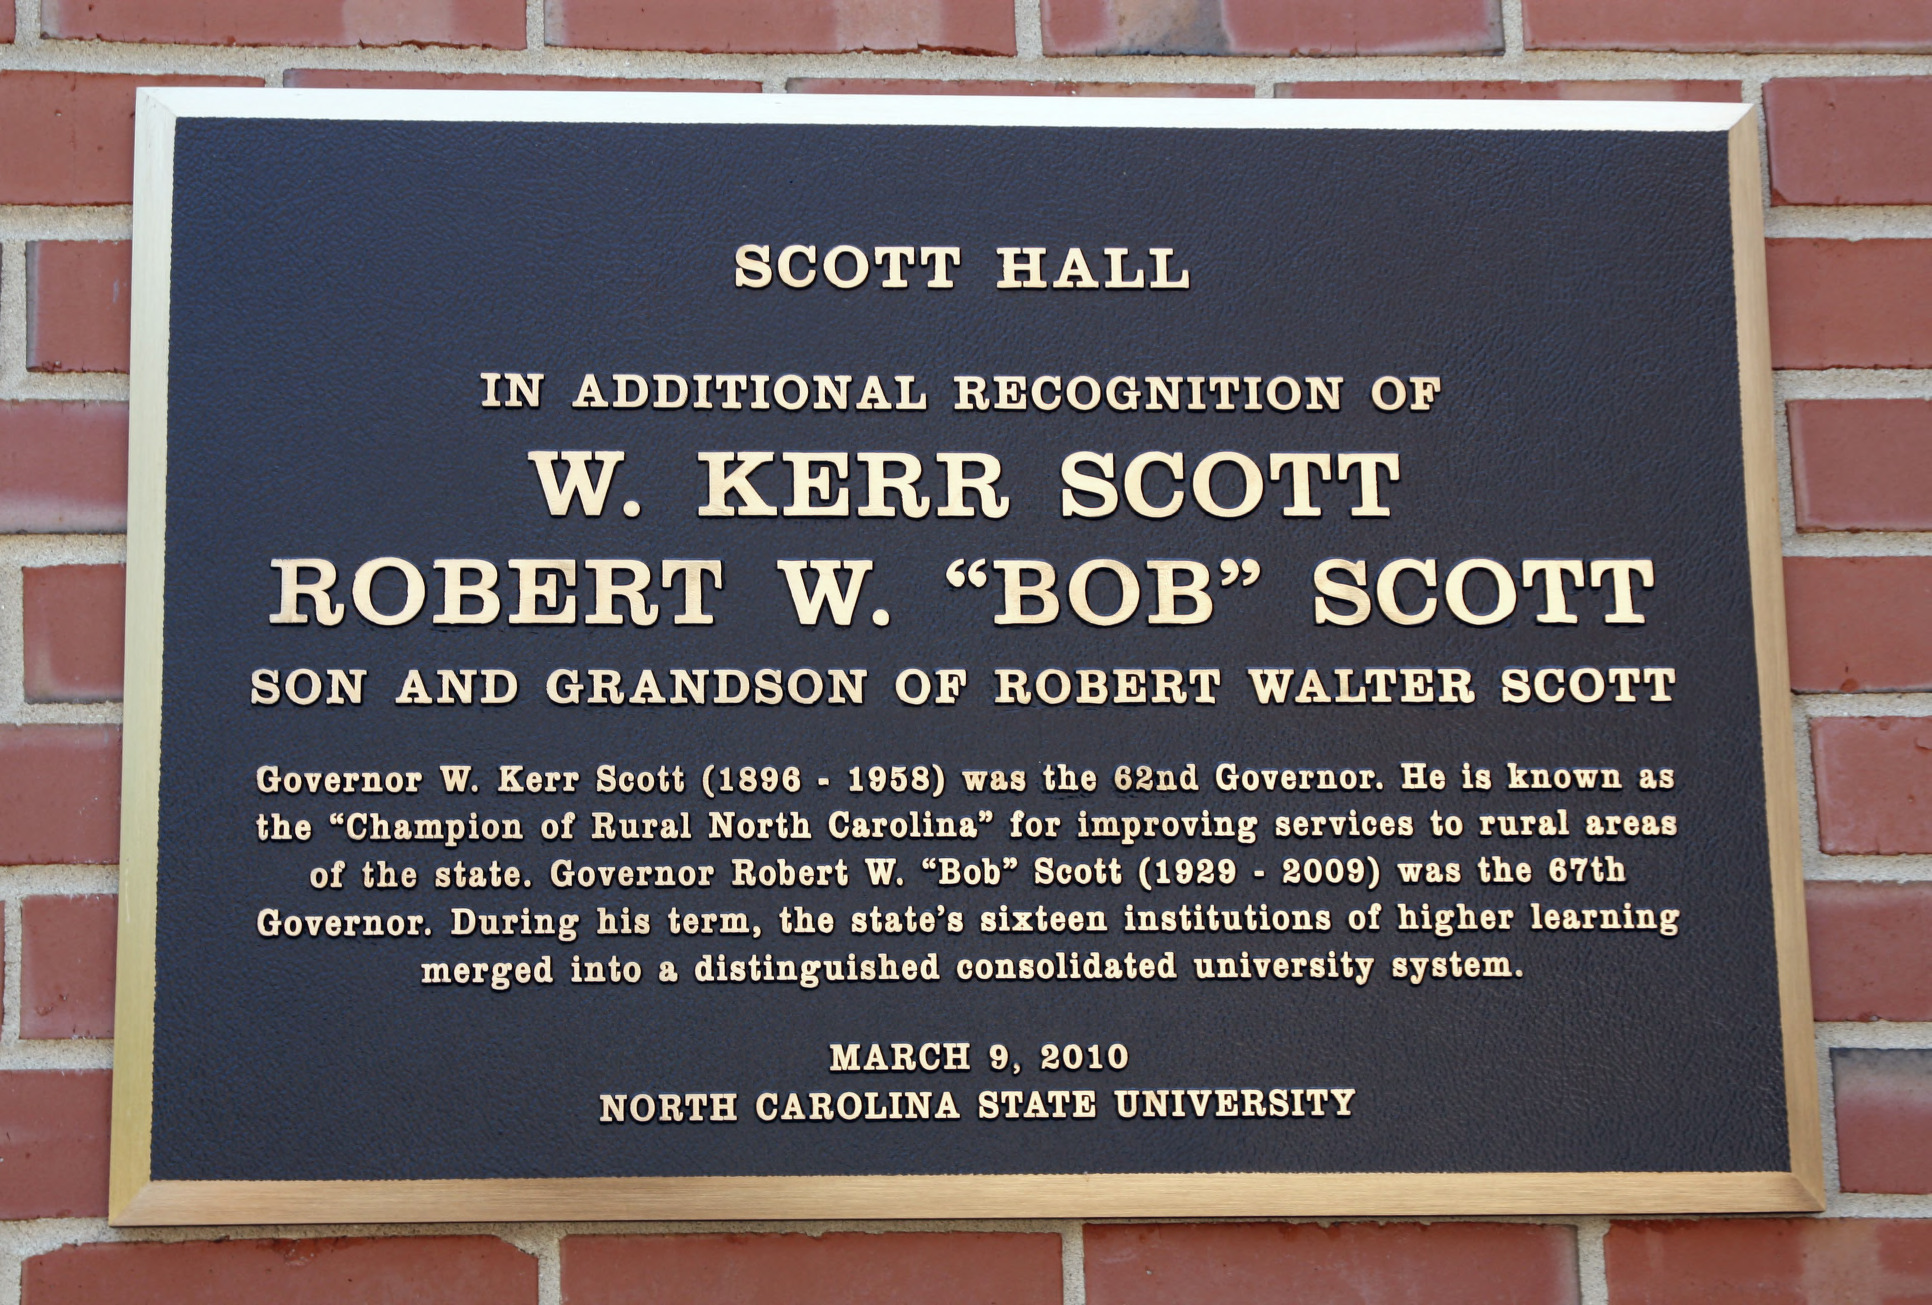 Plaque at Scott Hall